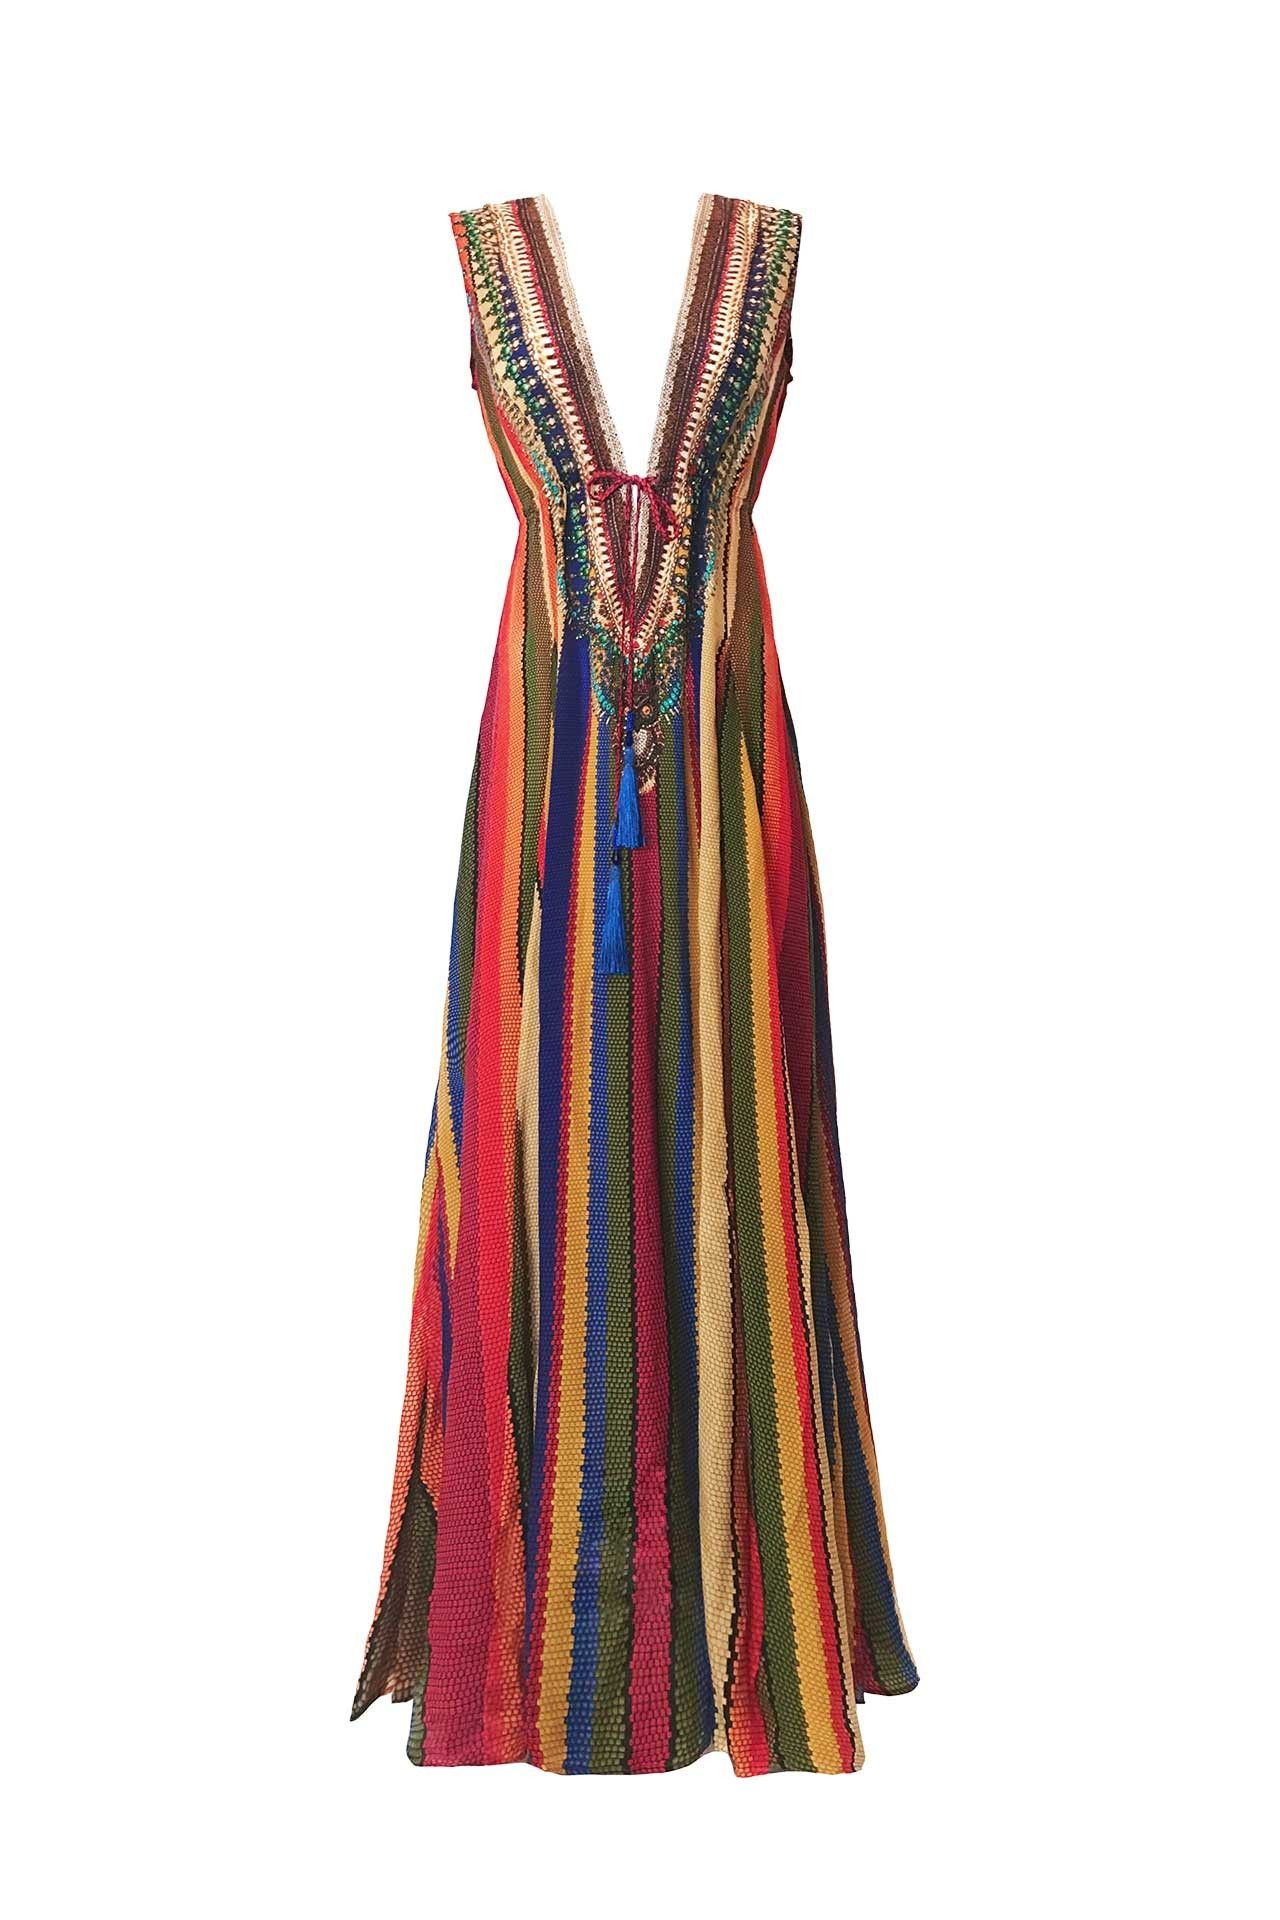 717f2a1f53 Multi-Color Rainbow Striped Maxi Dress as seen on Paris Hilton in ...